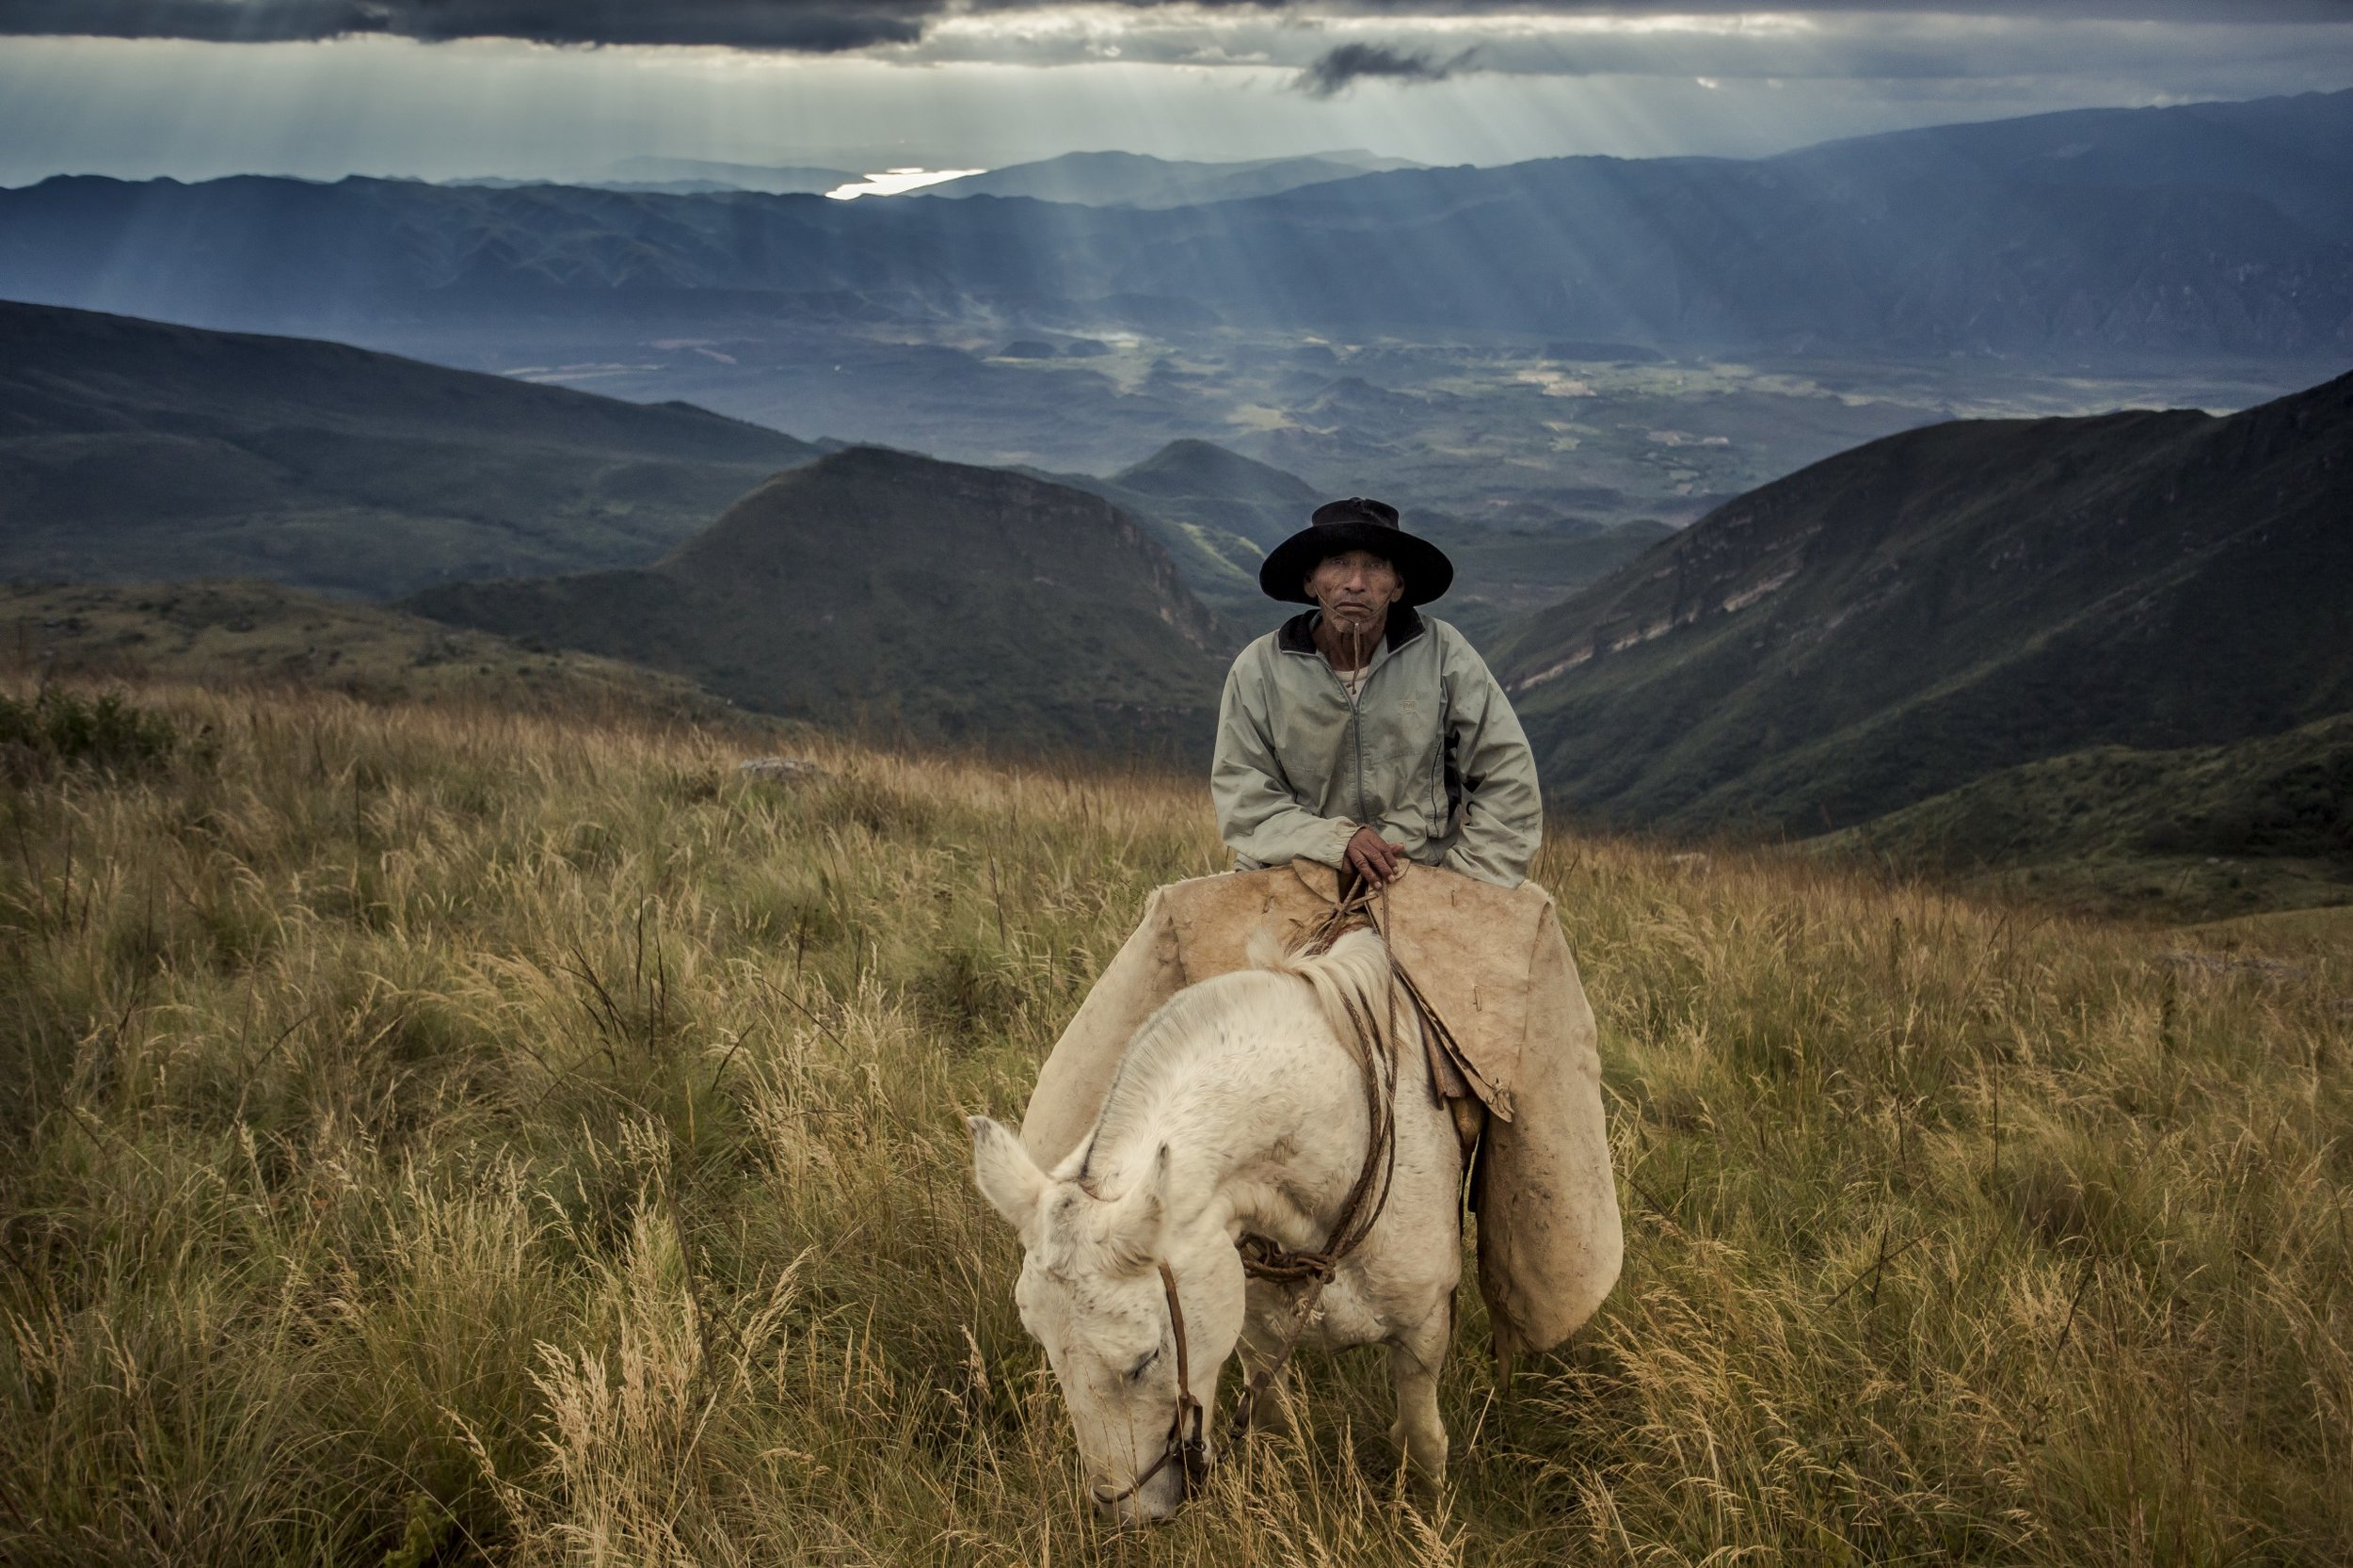 Don Antonio, our 80-year old guide, had lived up the mountain for six years, returning to the valley only once a week or fortnight to get supplies.